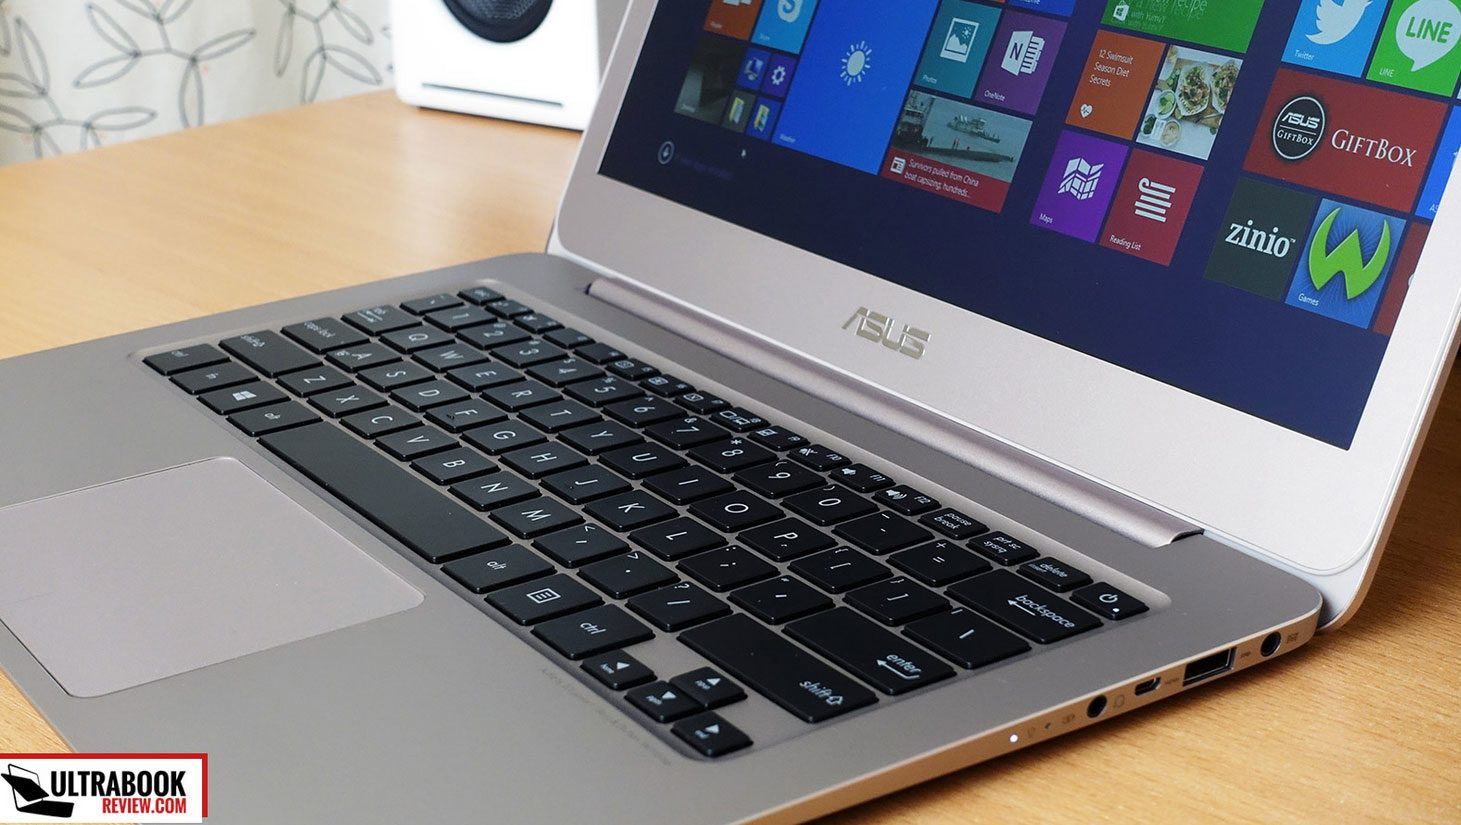 The Zenbook UX305FA puts Skylake hardware in a sleek and affordable package